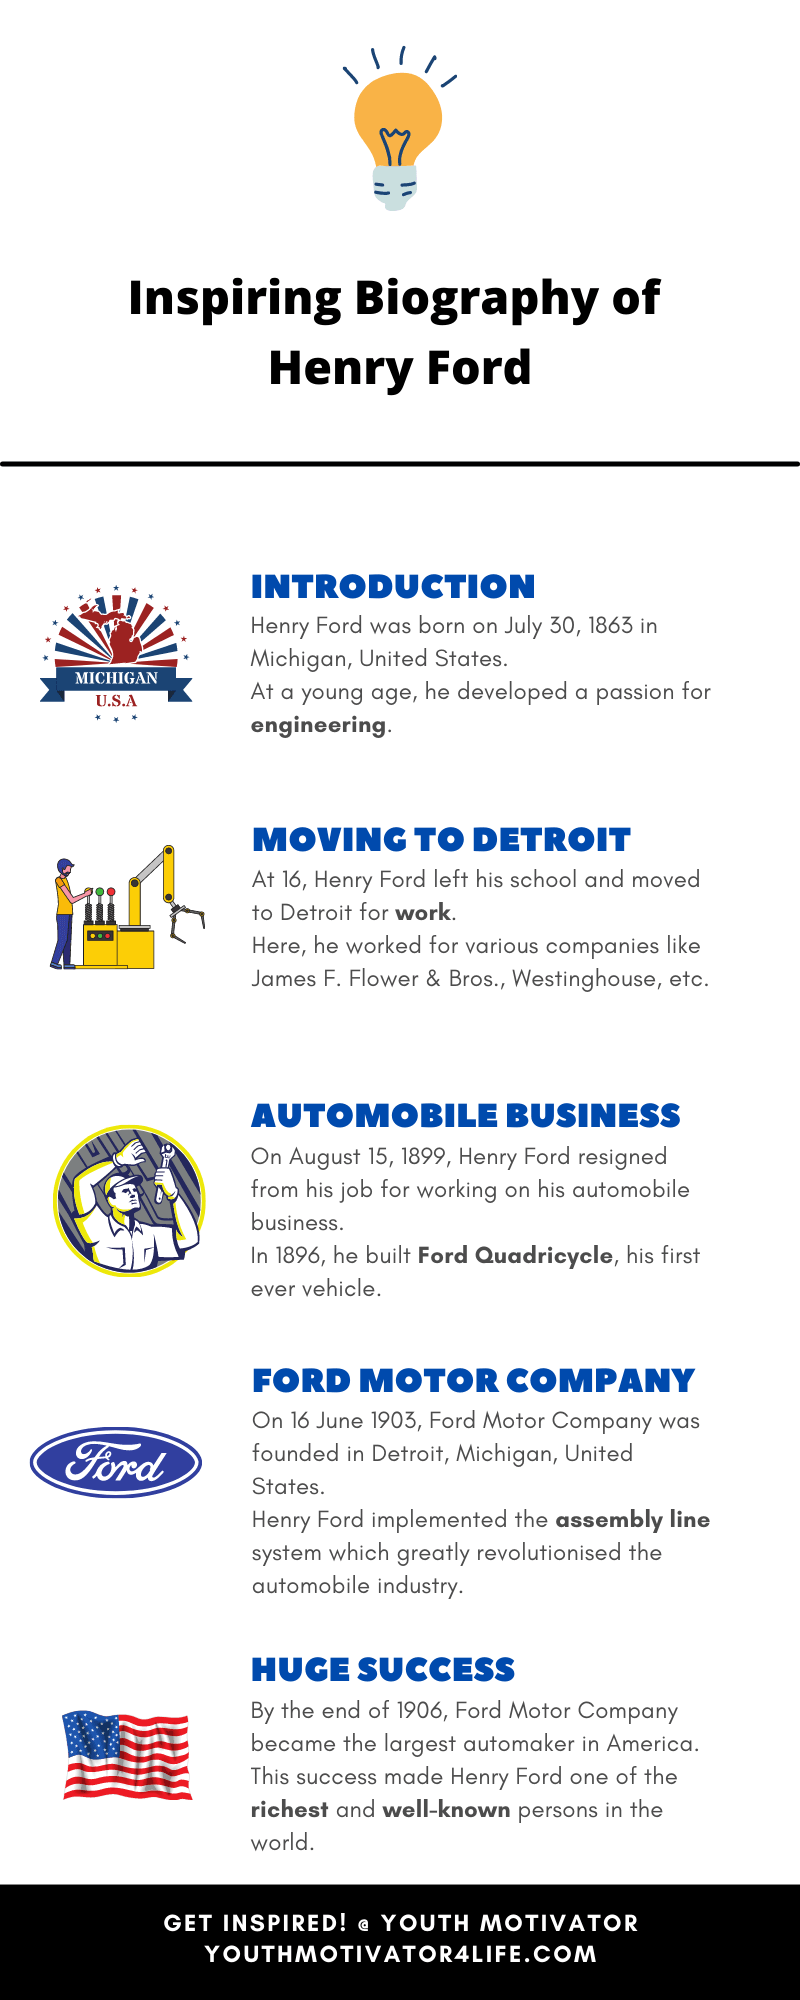 An infographic on biography of Henry Ford